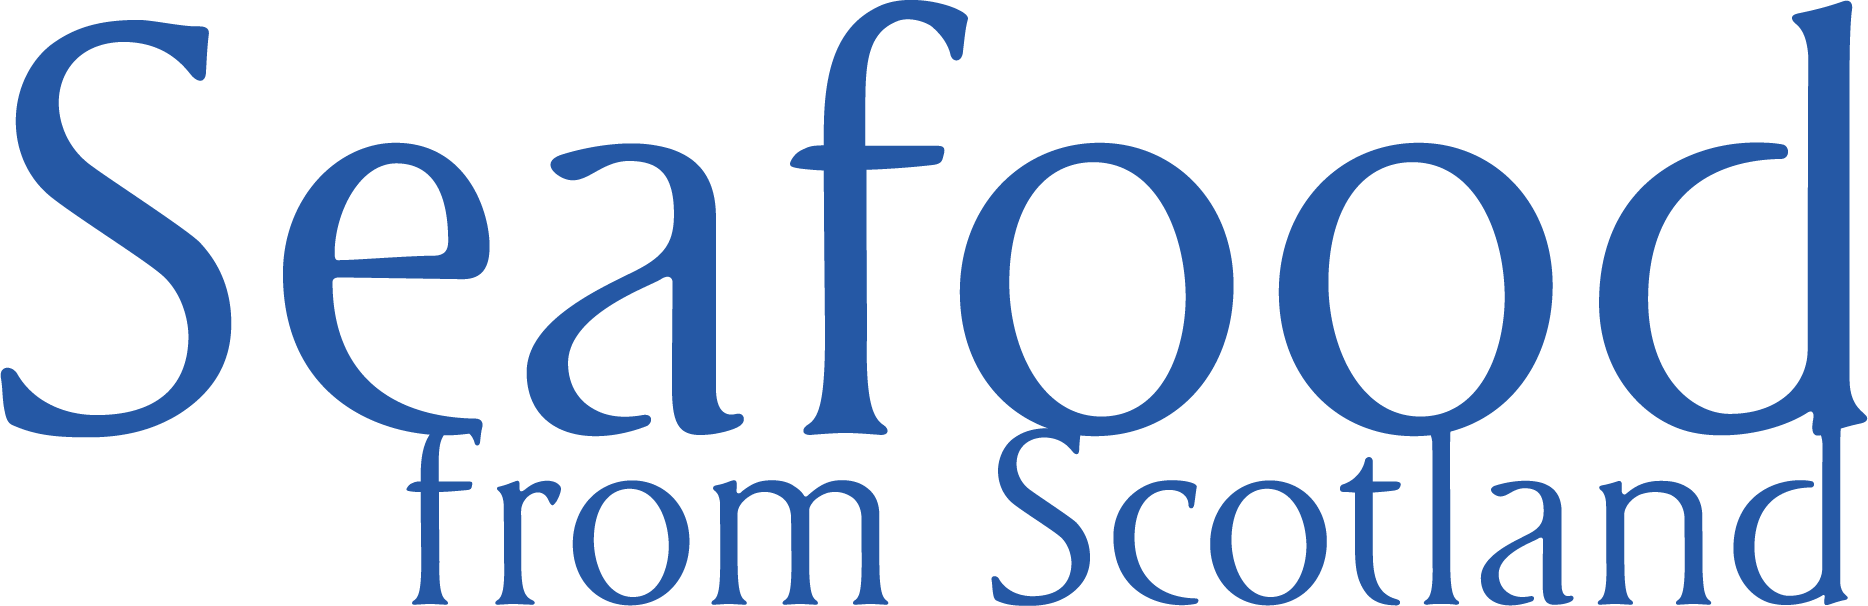 Visit the Seafood Scotland website